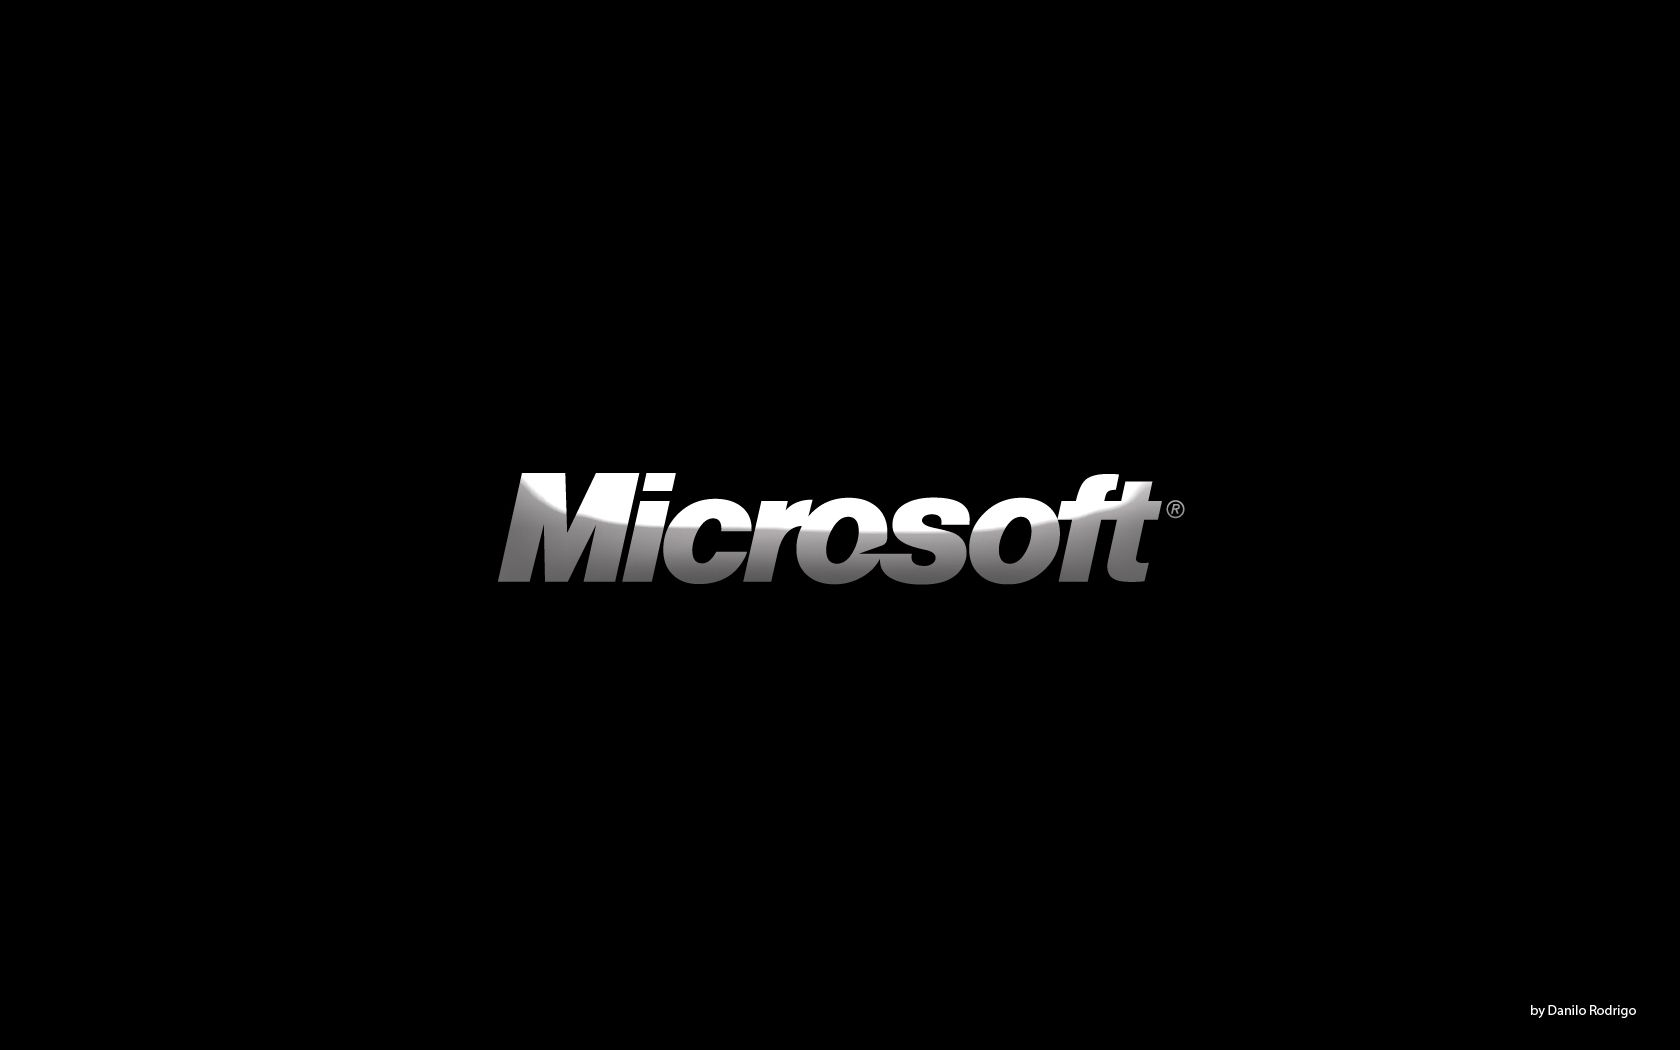 Microsoft Wallpapers